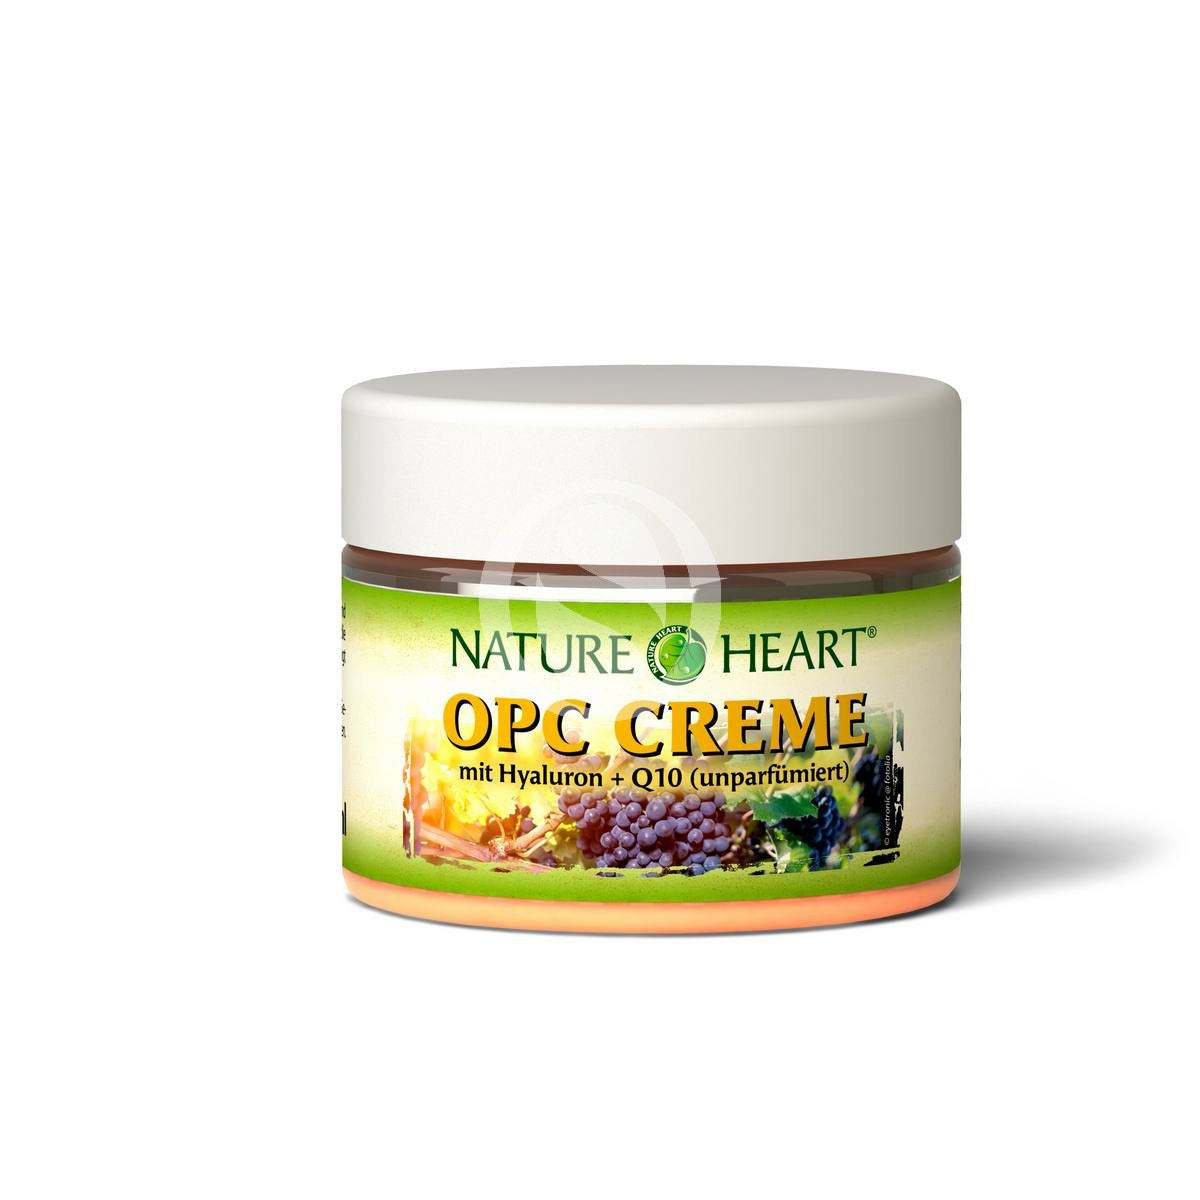 Produktbild Nature Heart OPC Creme 50ml